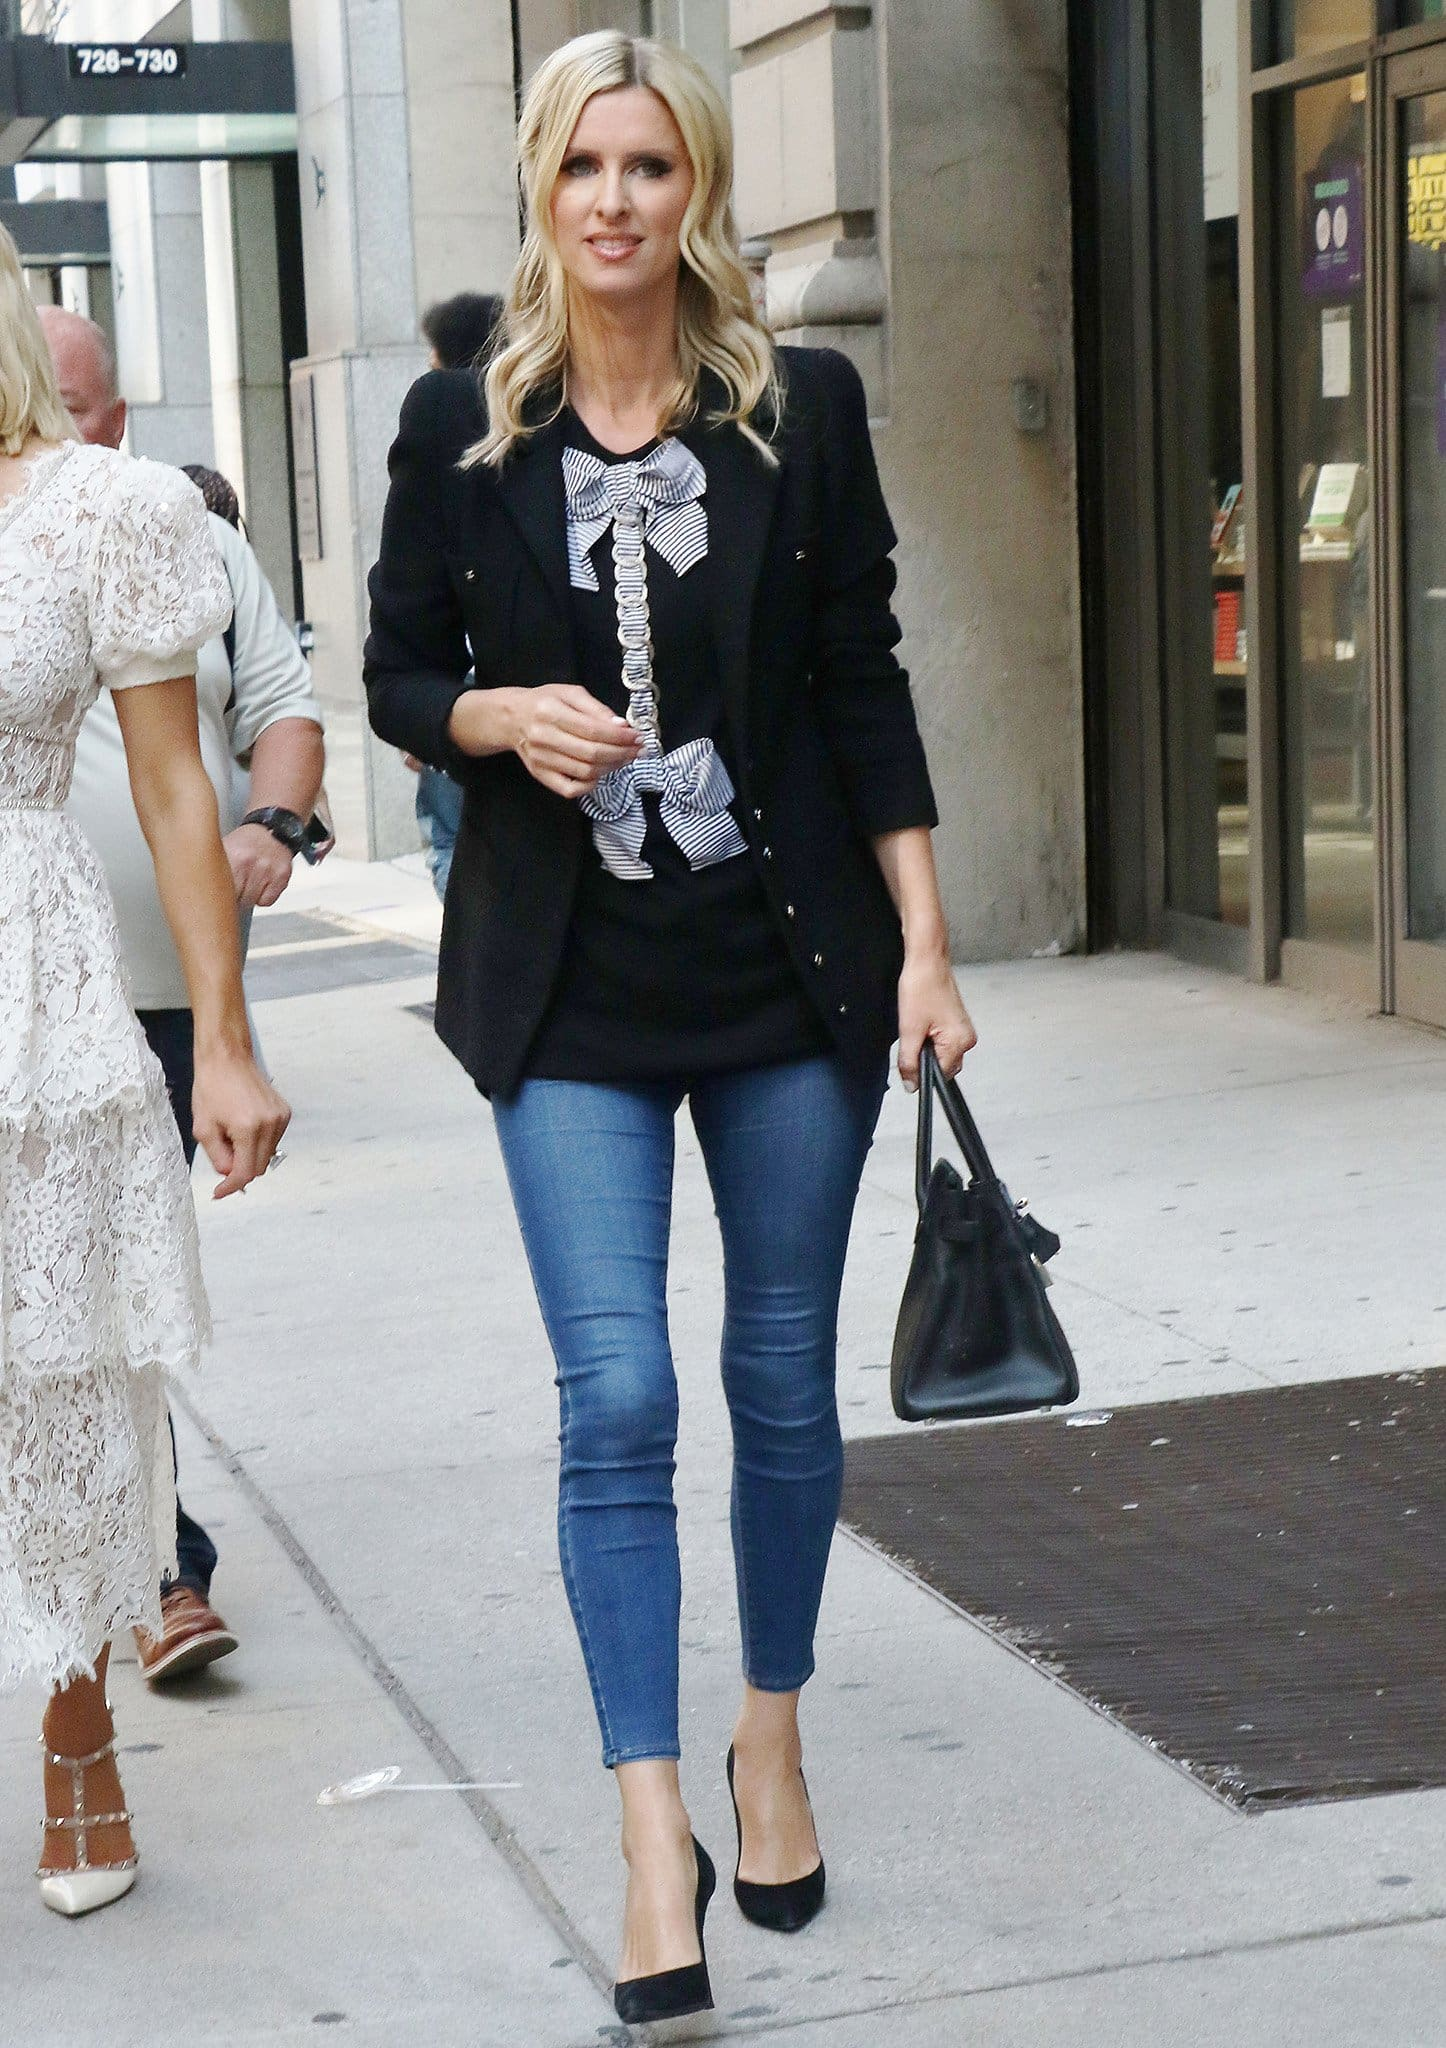 Nicky Hilton opts for casual skinny jeans with Chanel bow-detailed top and blazer